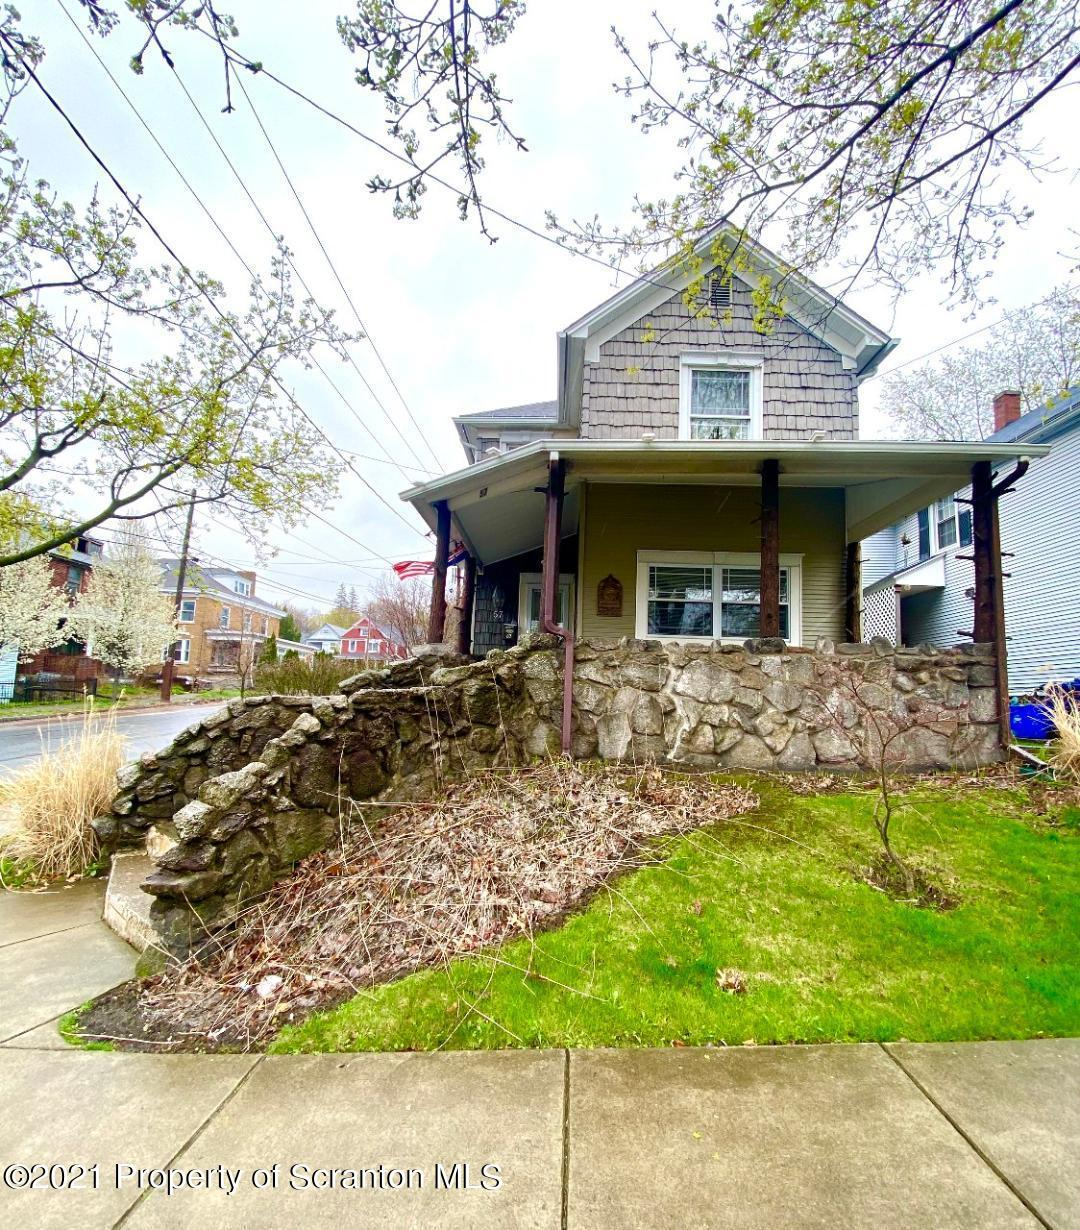 57 Church St, Carbondale, Pennsylvania 18407, 3 Bedrooms Bedrooms, 7 Rooms Rooms,2 BathroomsBathrooms,Single Family,For Sale,Church,21-1366